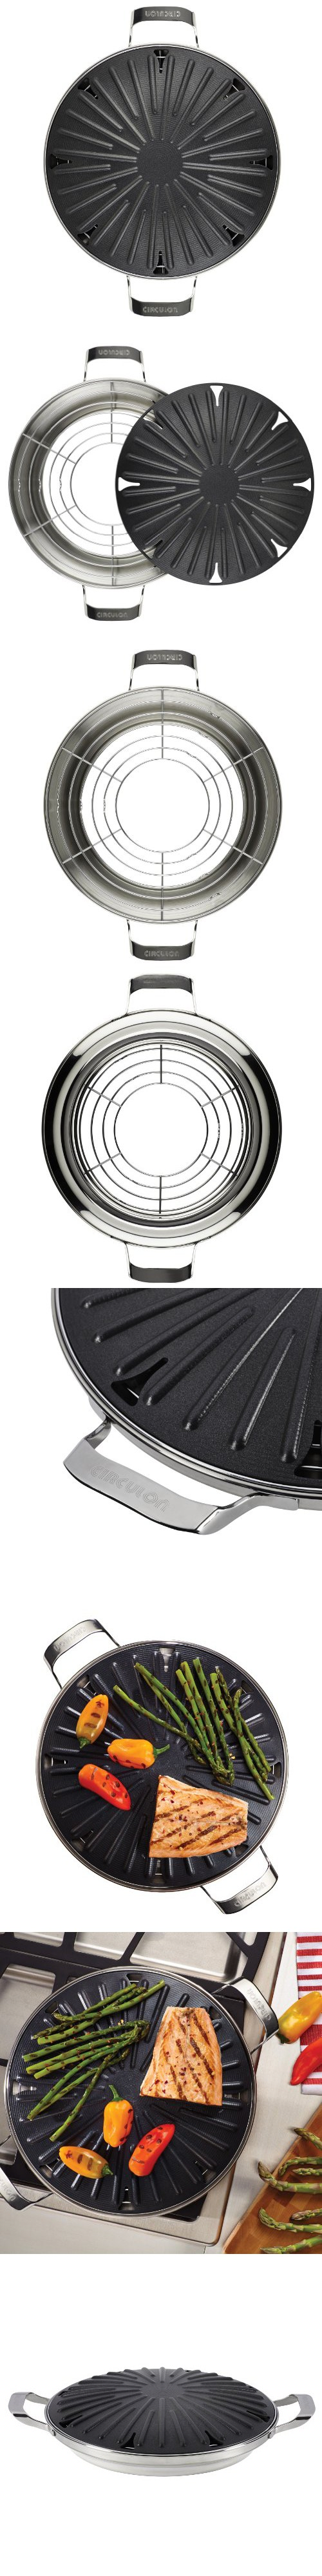 Circulon Hard-Anodized Nonstick 12-Inch Round Stovetop Grill with ...